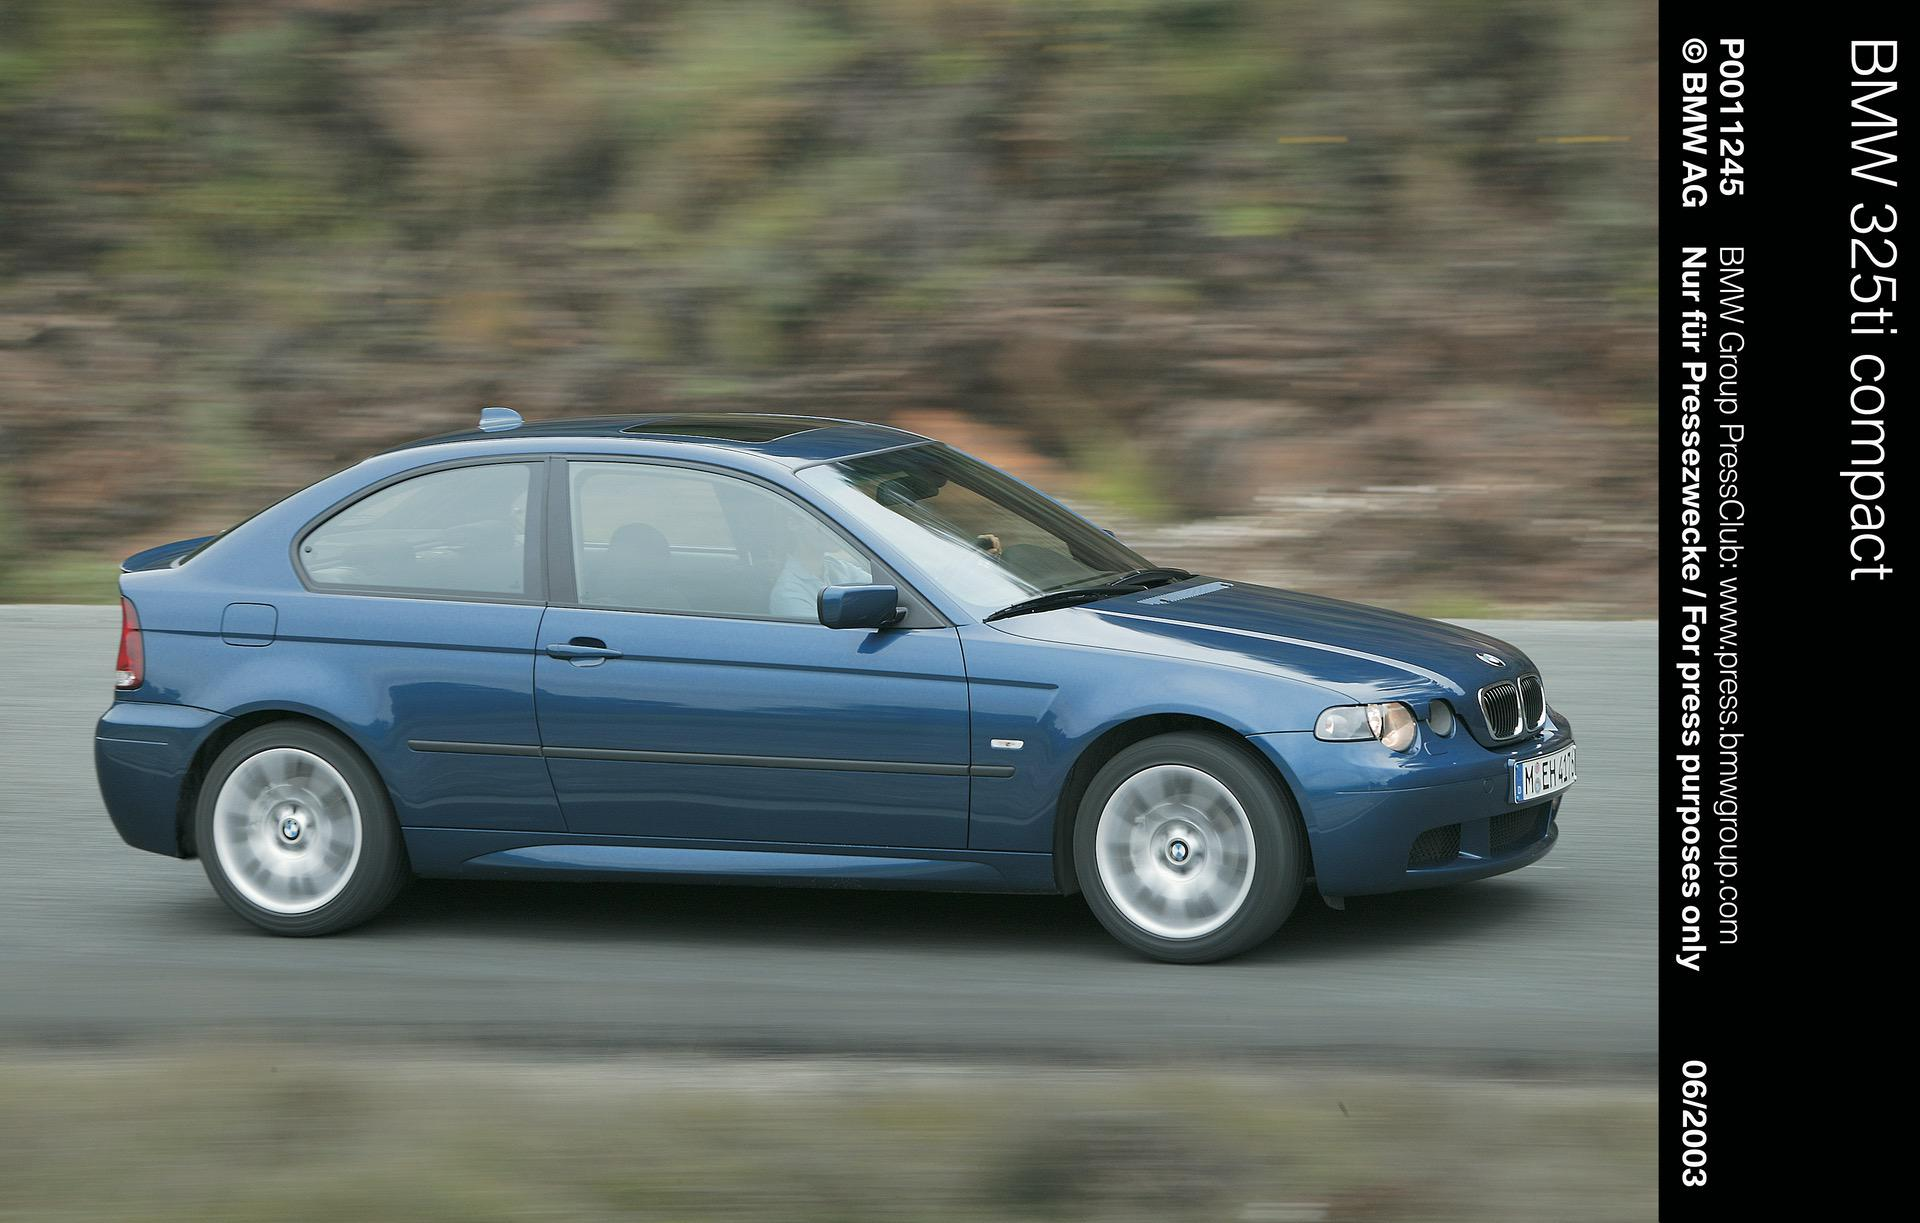 Car Throttle's E46 BMW 3 Series Compact Gets Chameleon Wrapped